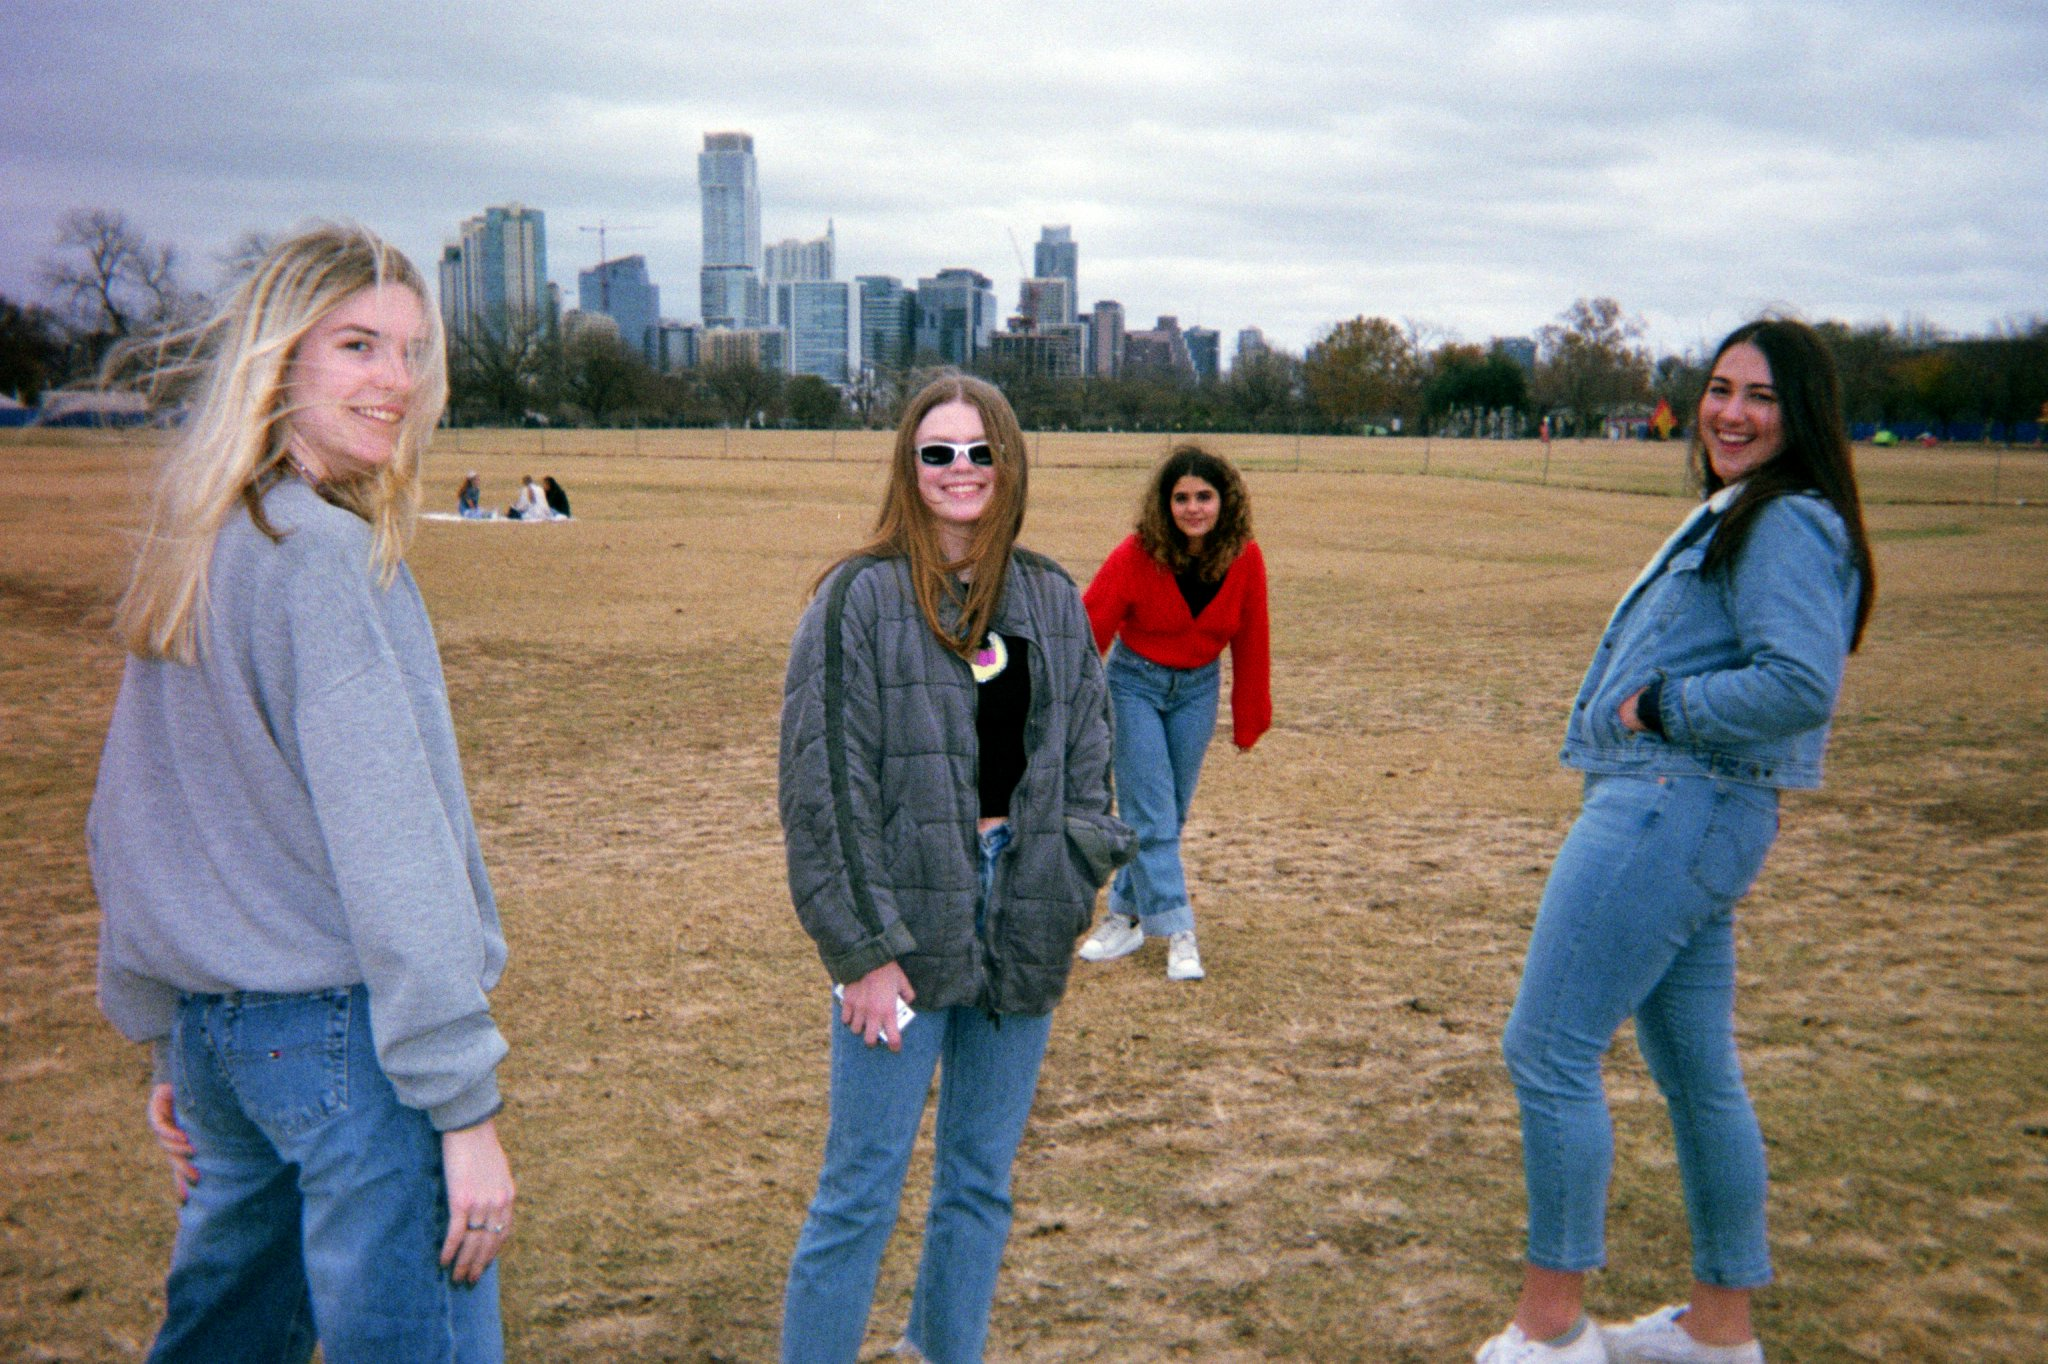 a group of girls in a field with skyscrapers in the background